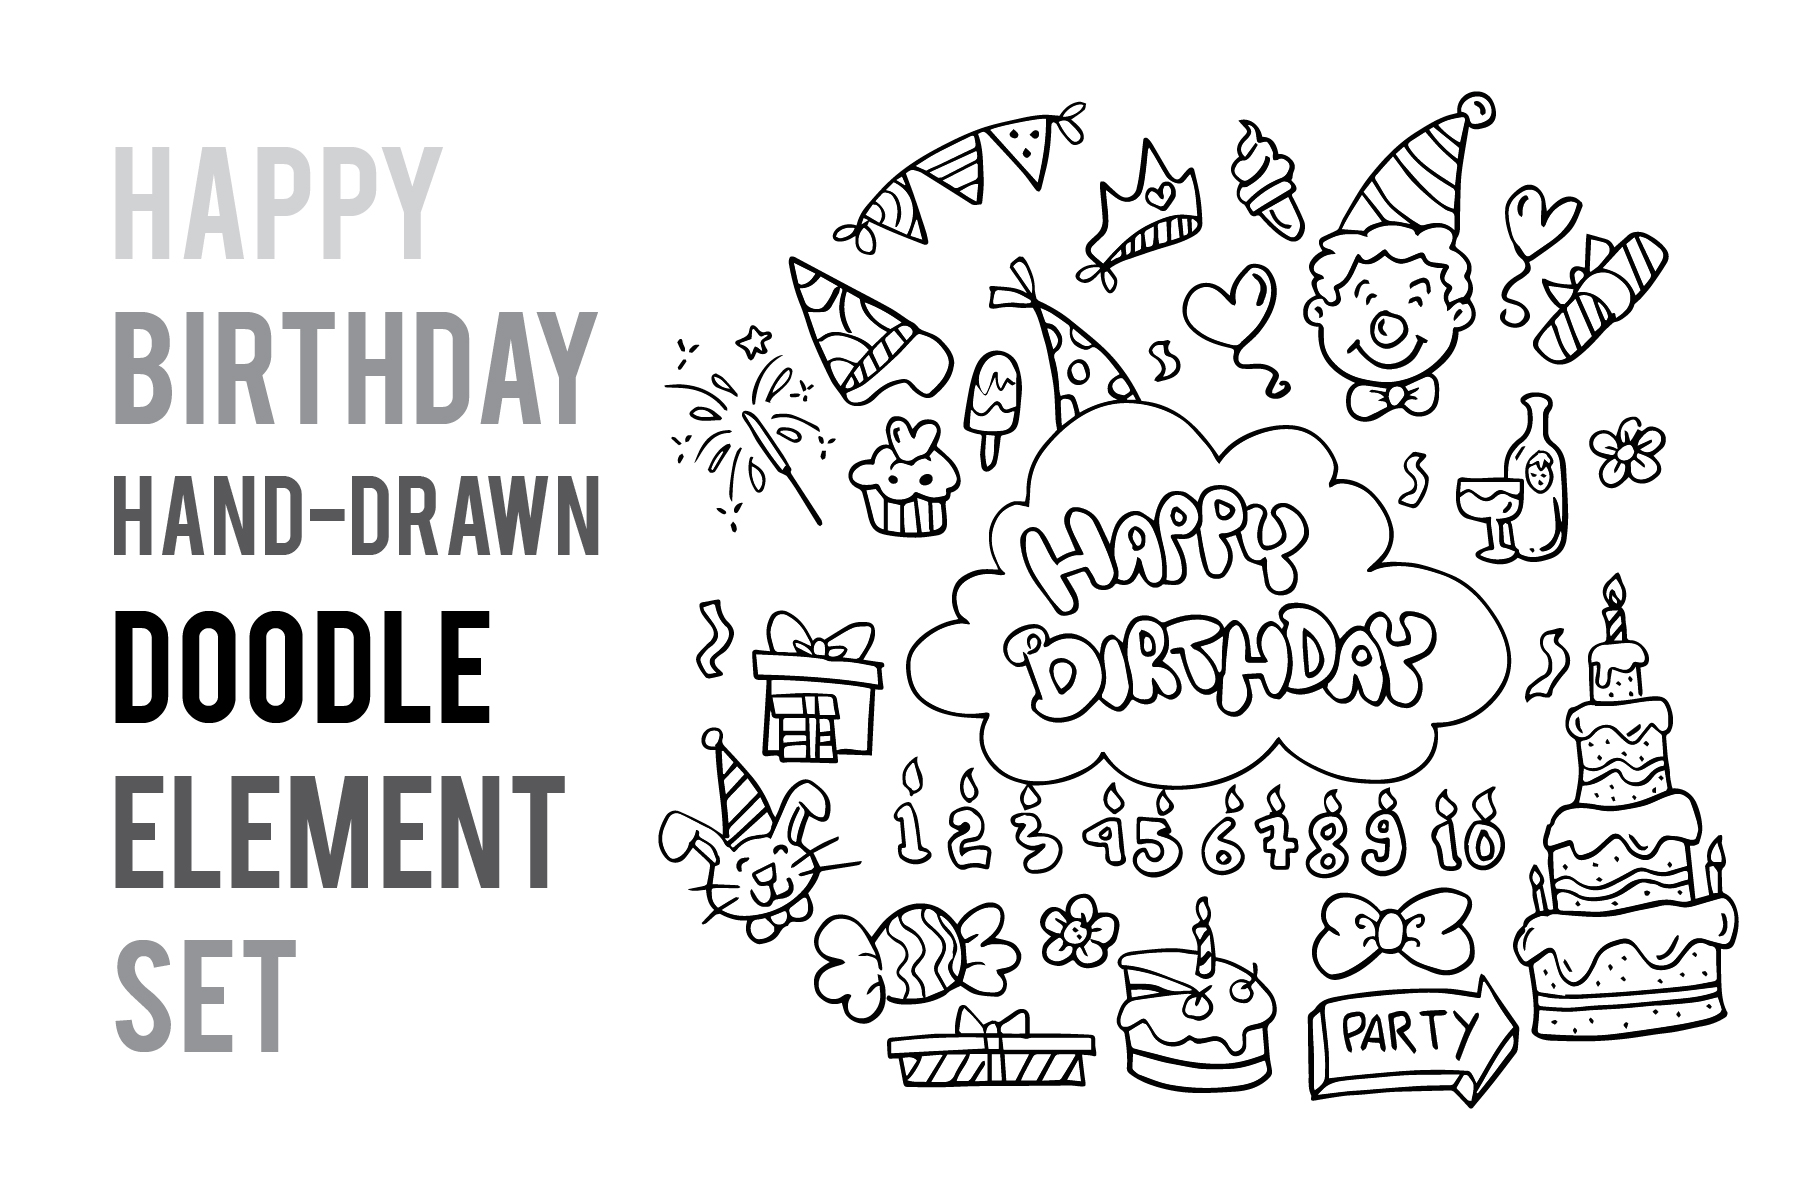 Download Free Doodle Birthday Party Graphic By Icikuhibiniu Creative Fabrica for Cricut Explore, Silhouette and other cutting machines.